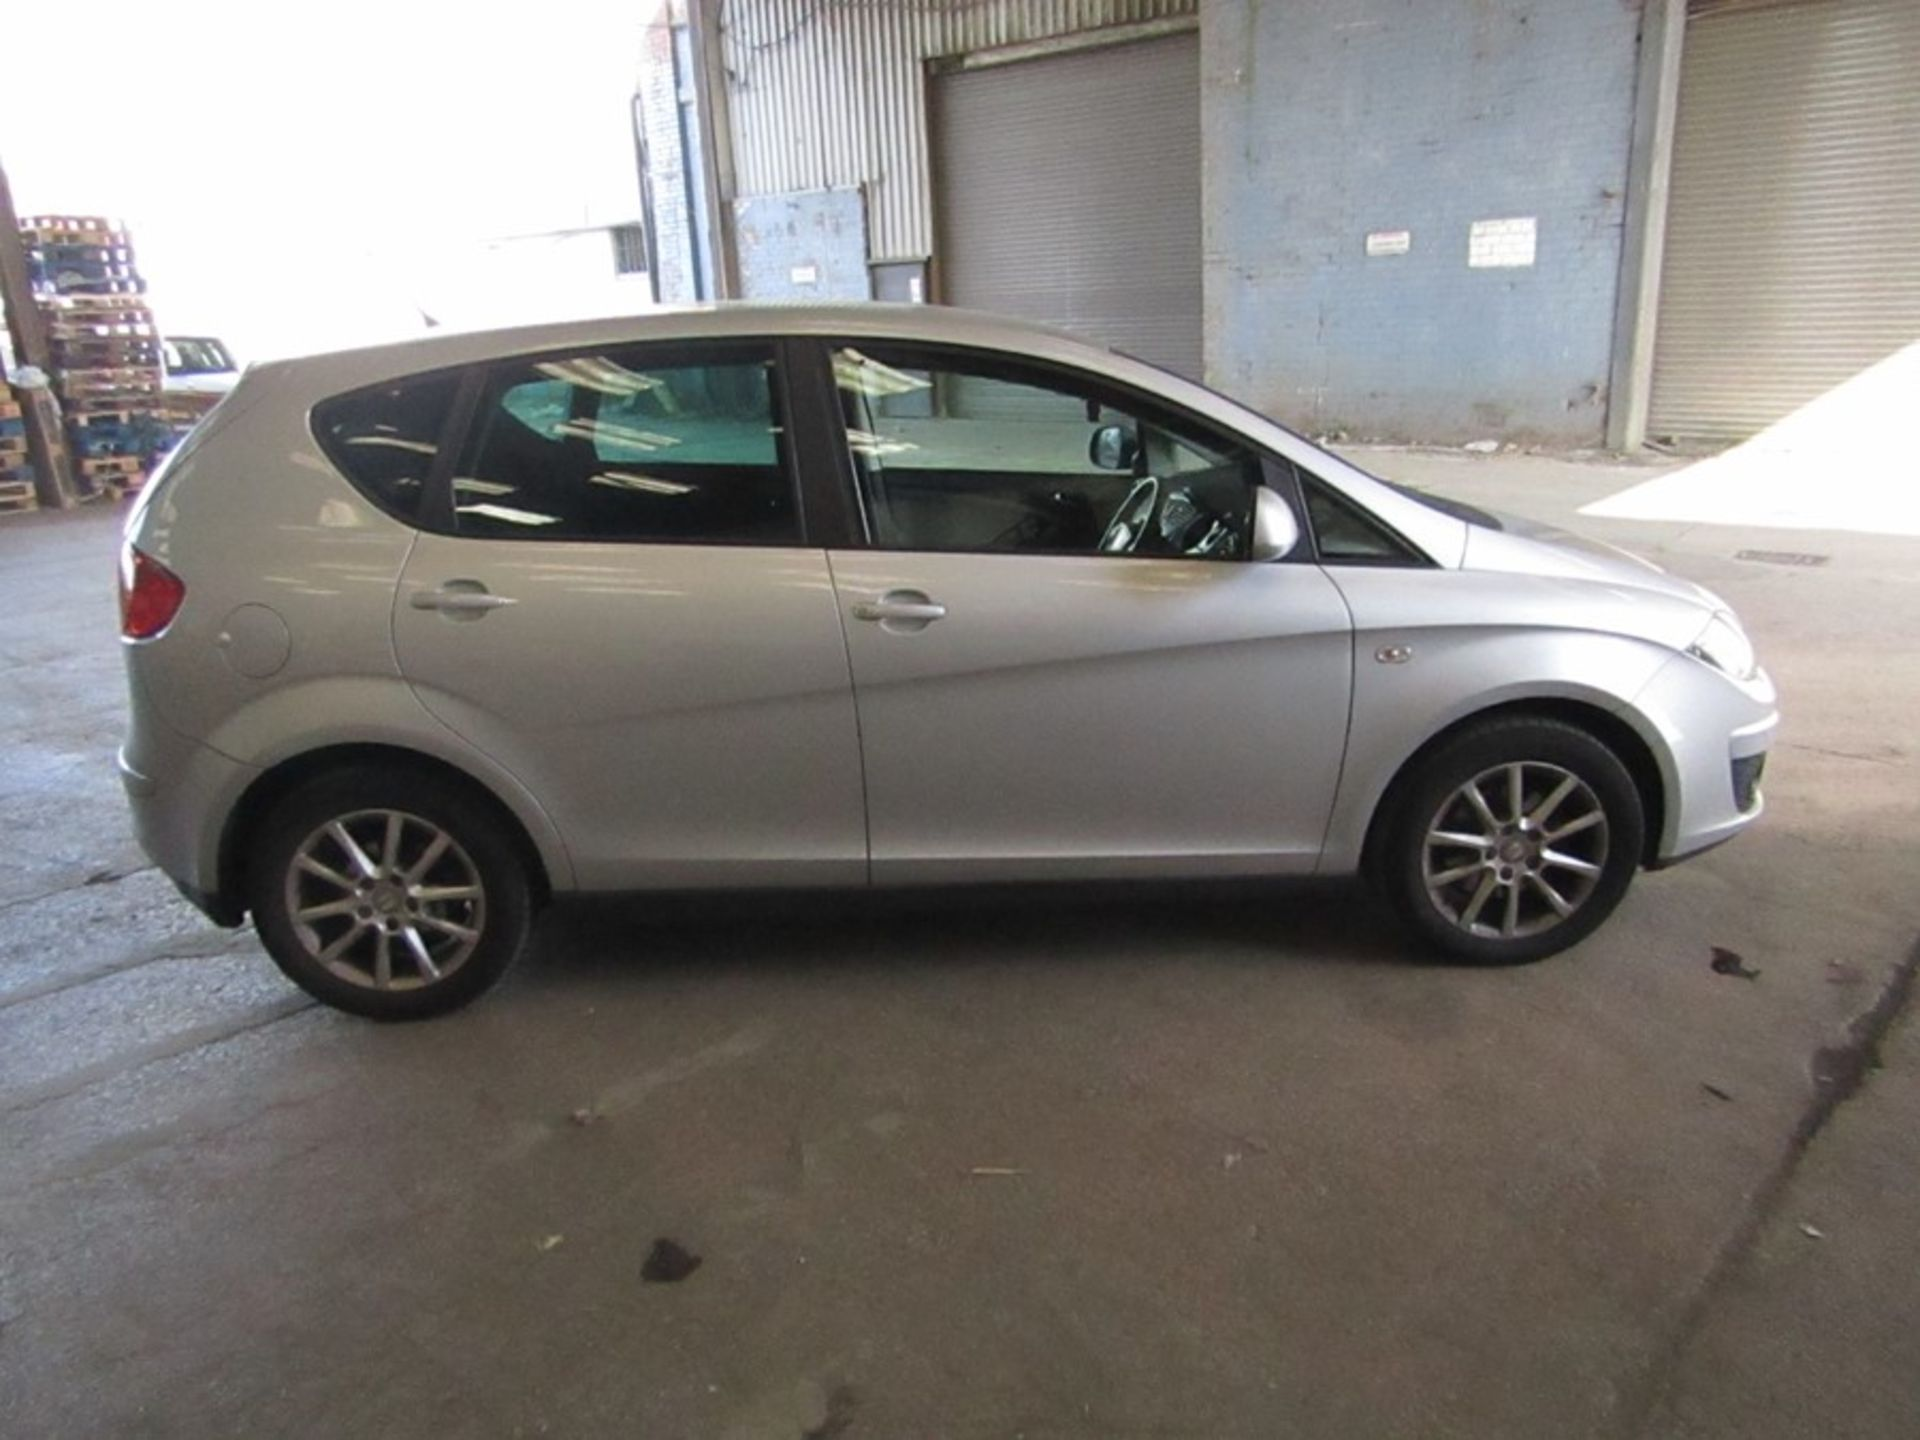 2011 Seat Althea SE CR TDI Auto, 1.6TDI, 47,678 miles (unchecked but appears to be inline with the - Image 2 of 17